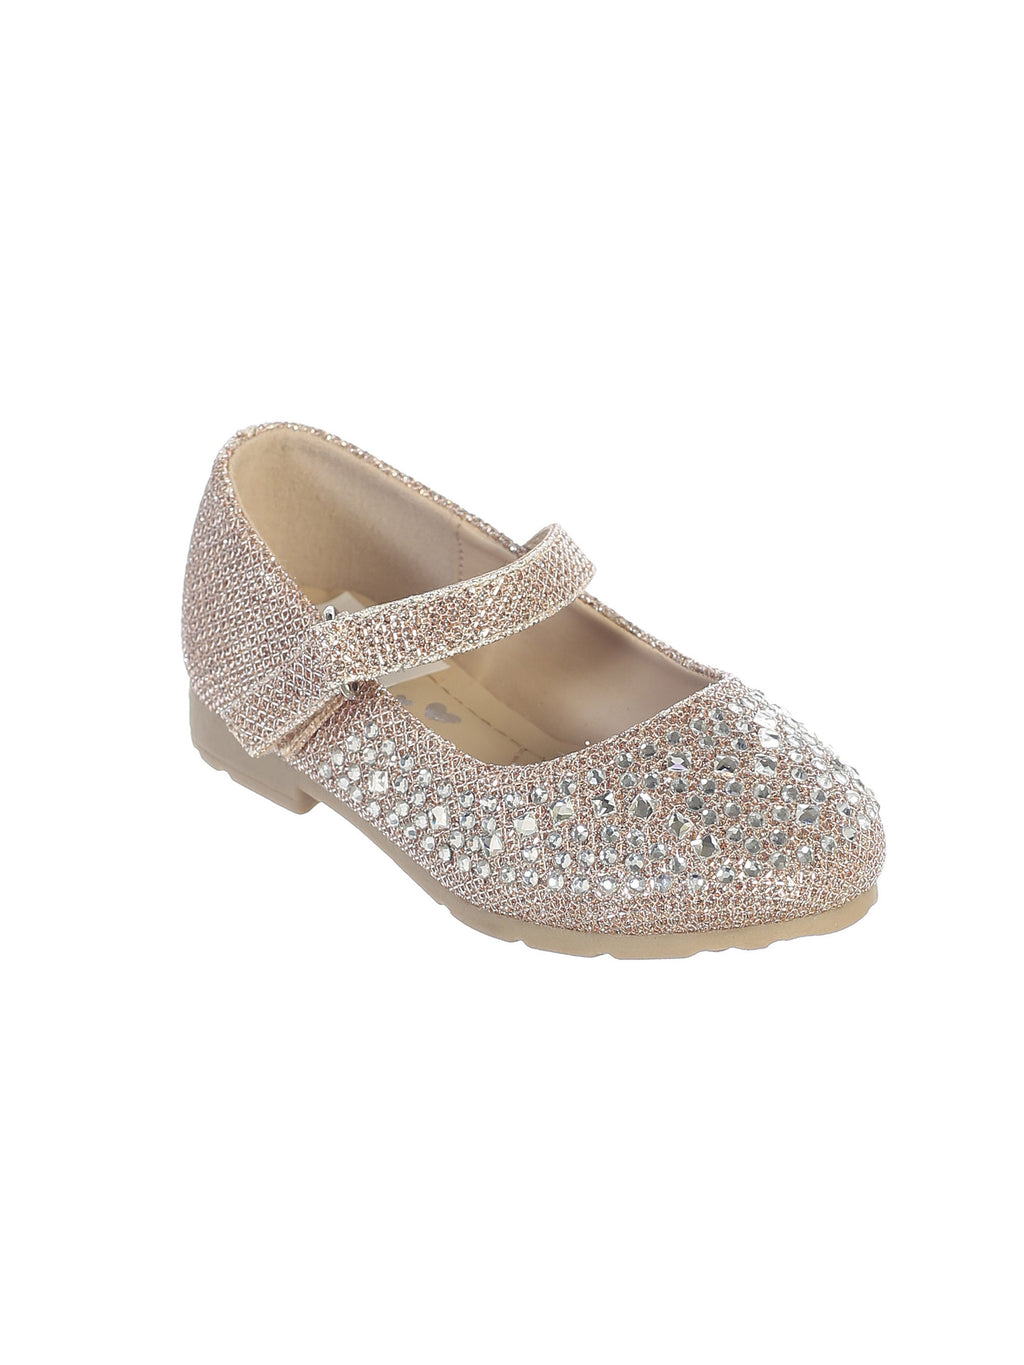 Rose Gold Metallic Shoes with Sparkling Rhinestones